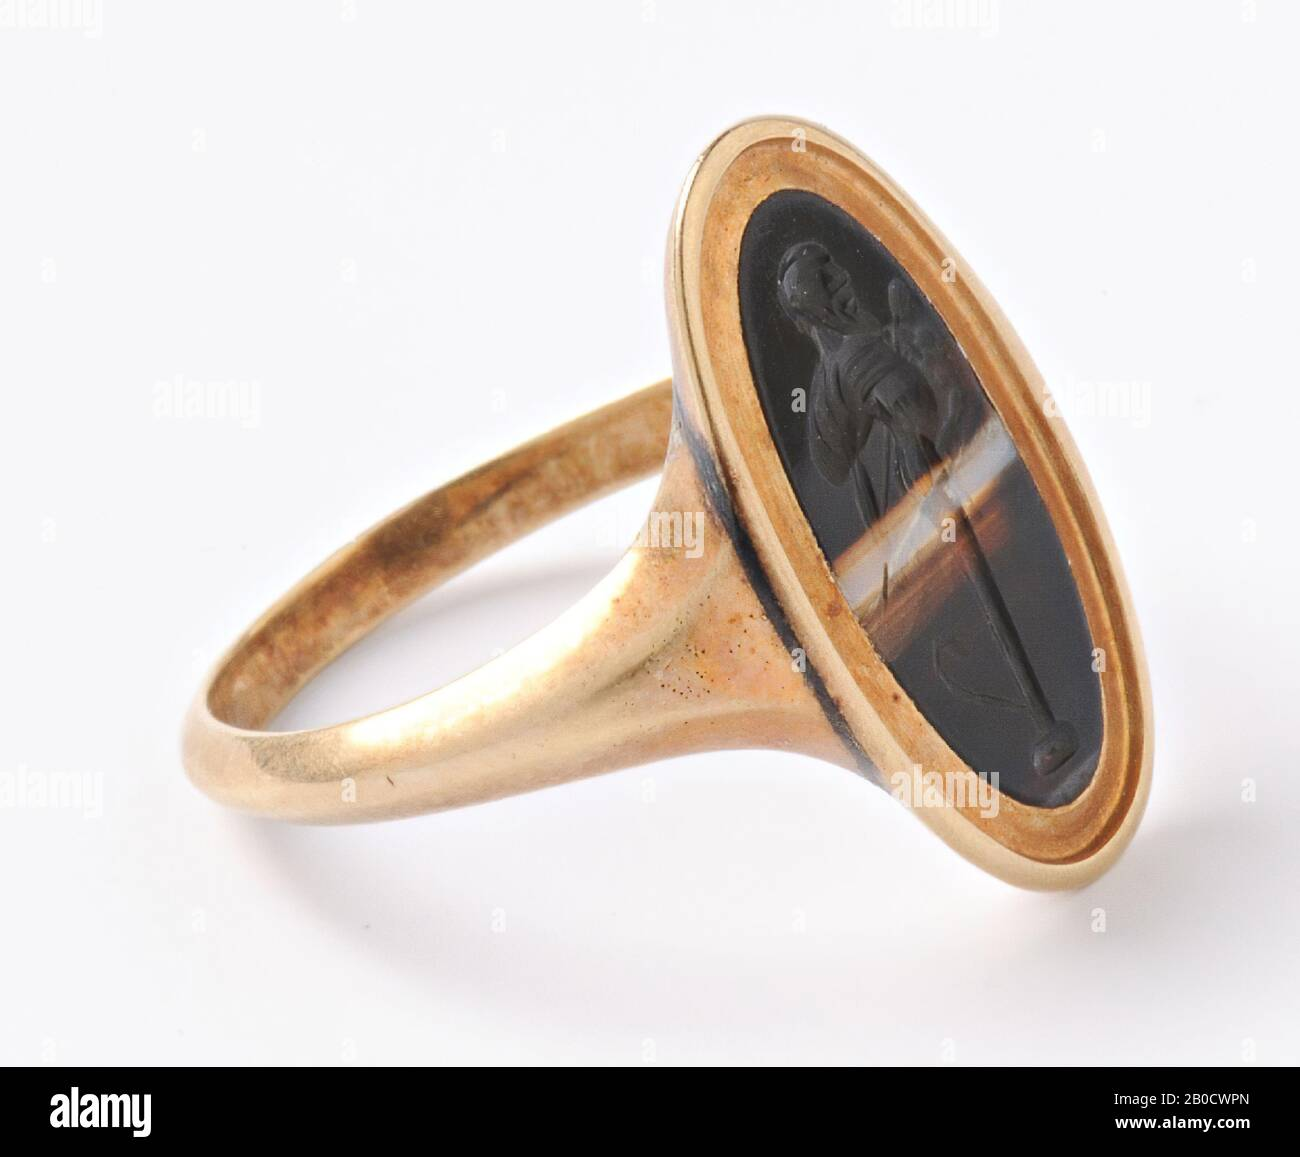 Vz: the herm is bald and has a long beard, a nebris seems to be draped over his right shoulder, the herm bears a thyrsos and at the base a pedal is shown, the herm is ithyphallisch., Gem, intaglio , ring stone, striped agate, Color: brown black Stock Photo